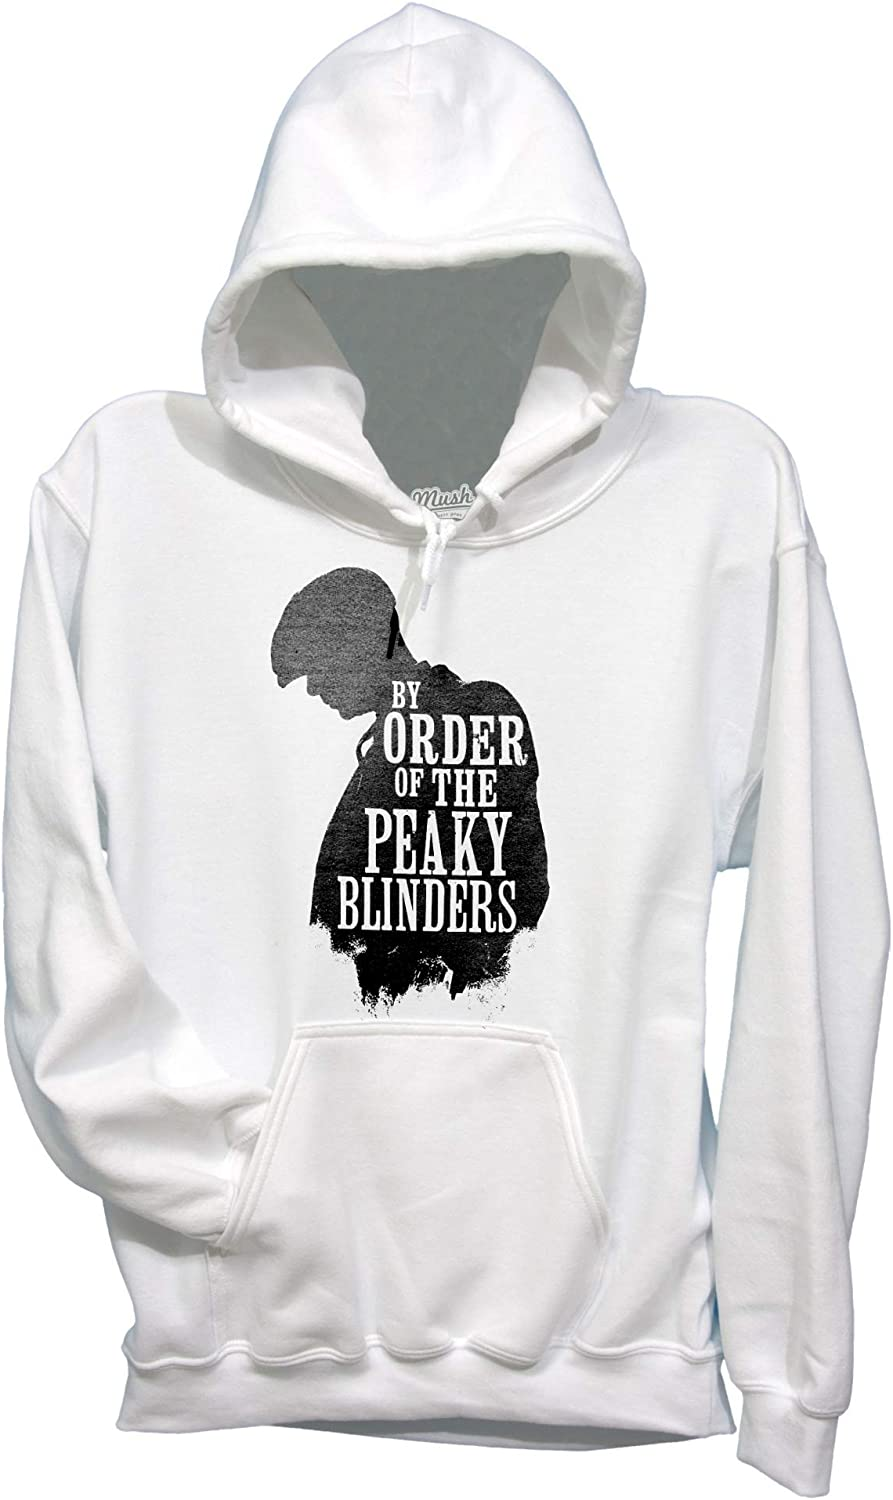 BY Order of The Peaky Blinders Thomas Shelby MUSH T-Shirt Nera Serie TV